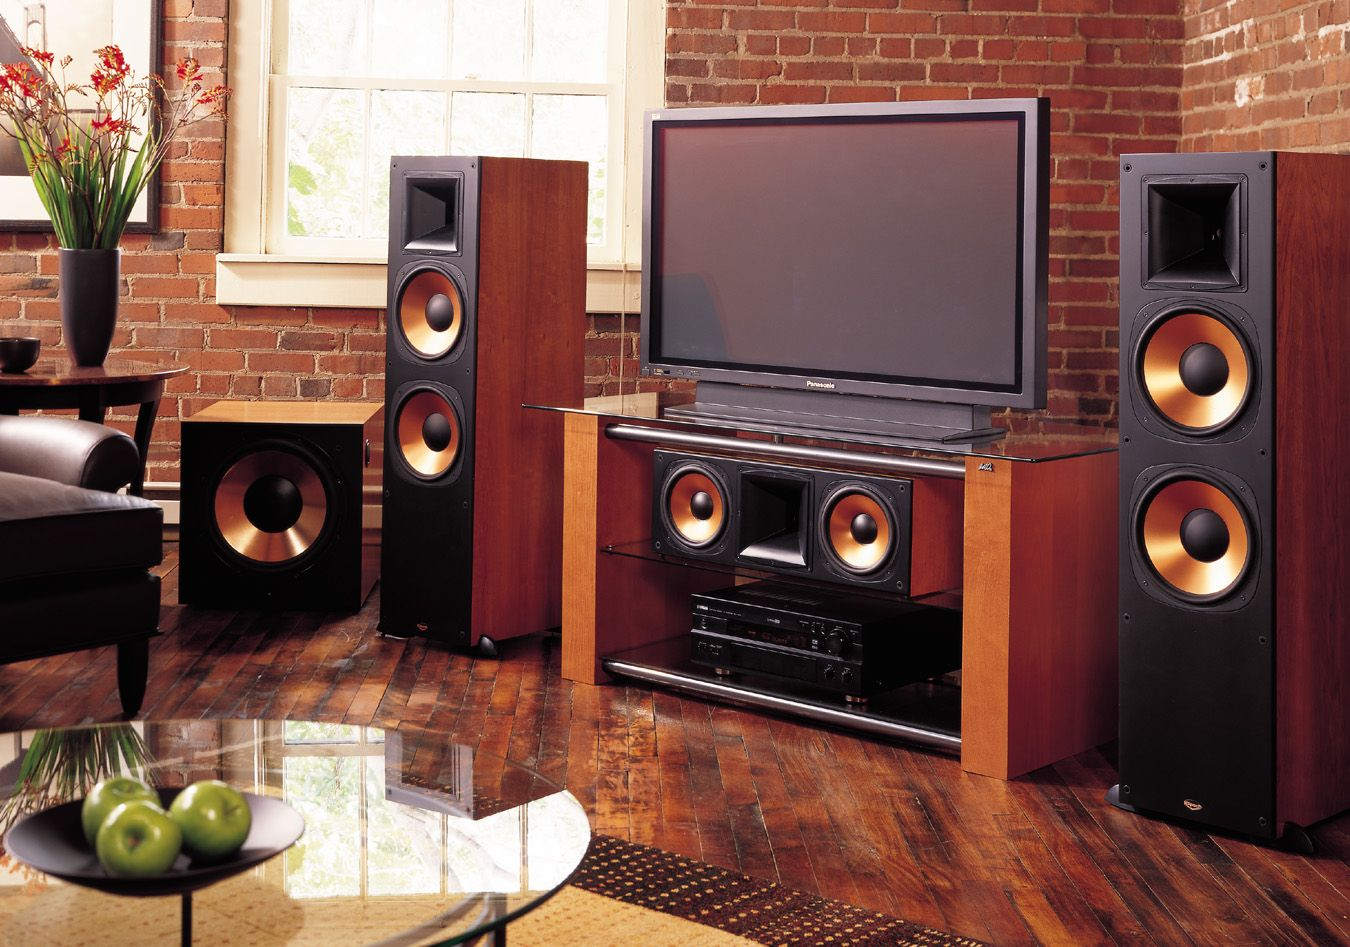 Now You Can Have Your Own #Hometheater With Assistance Of #Himalyanu0027s # Acoustics.